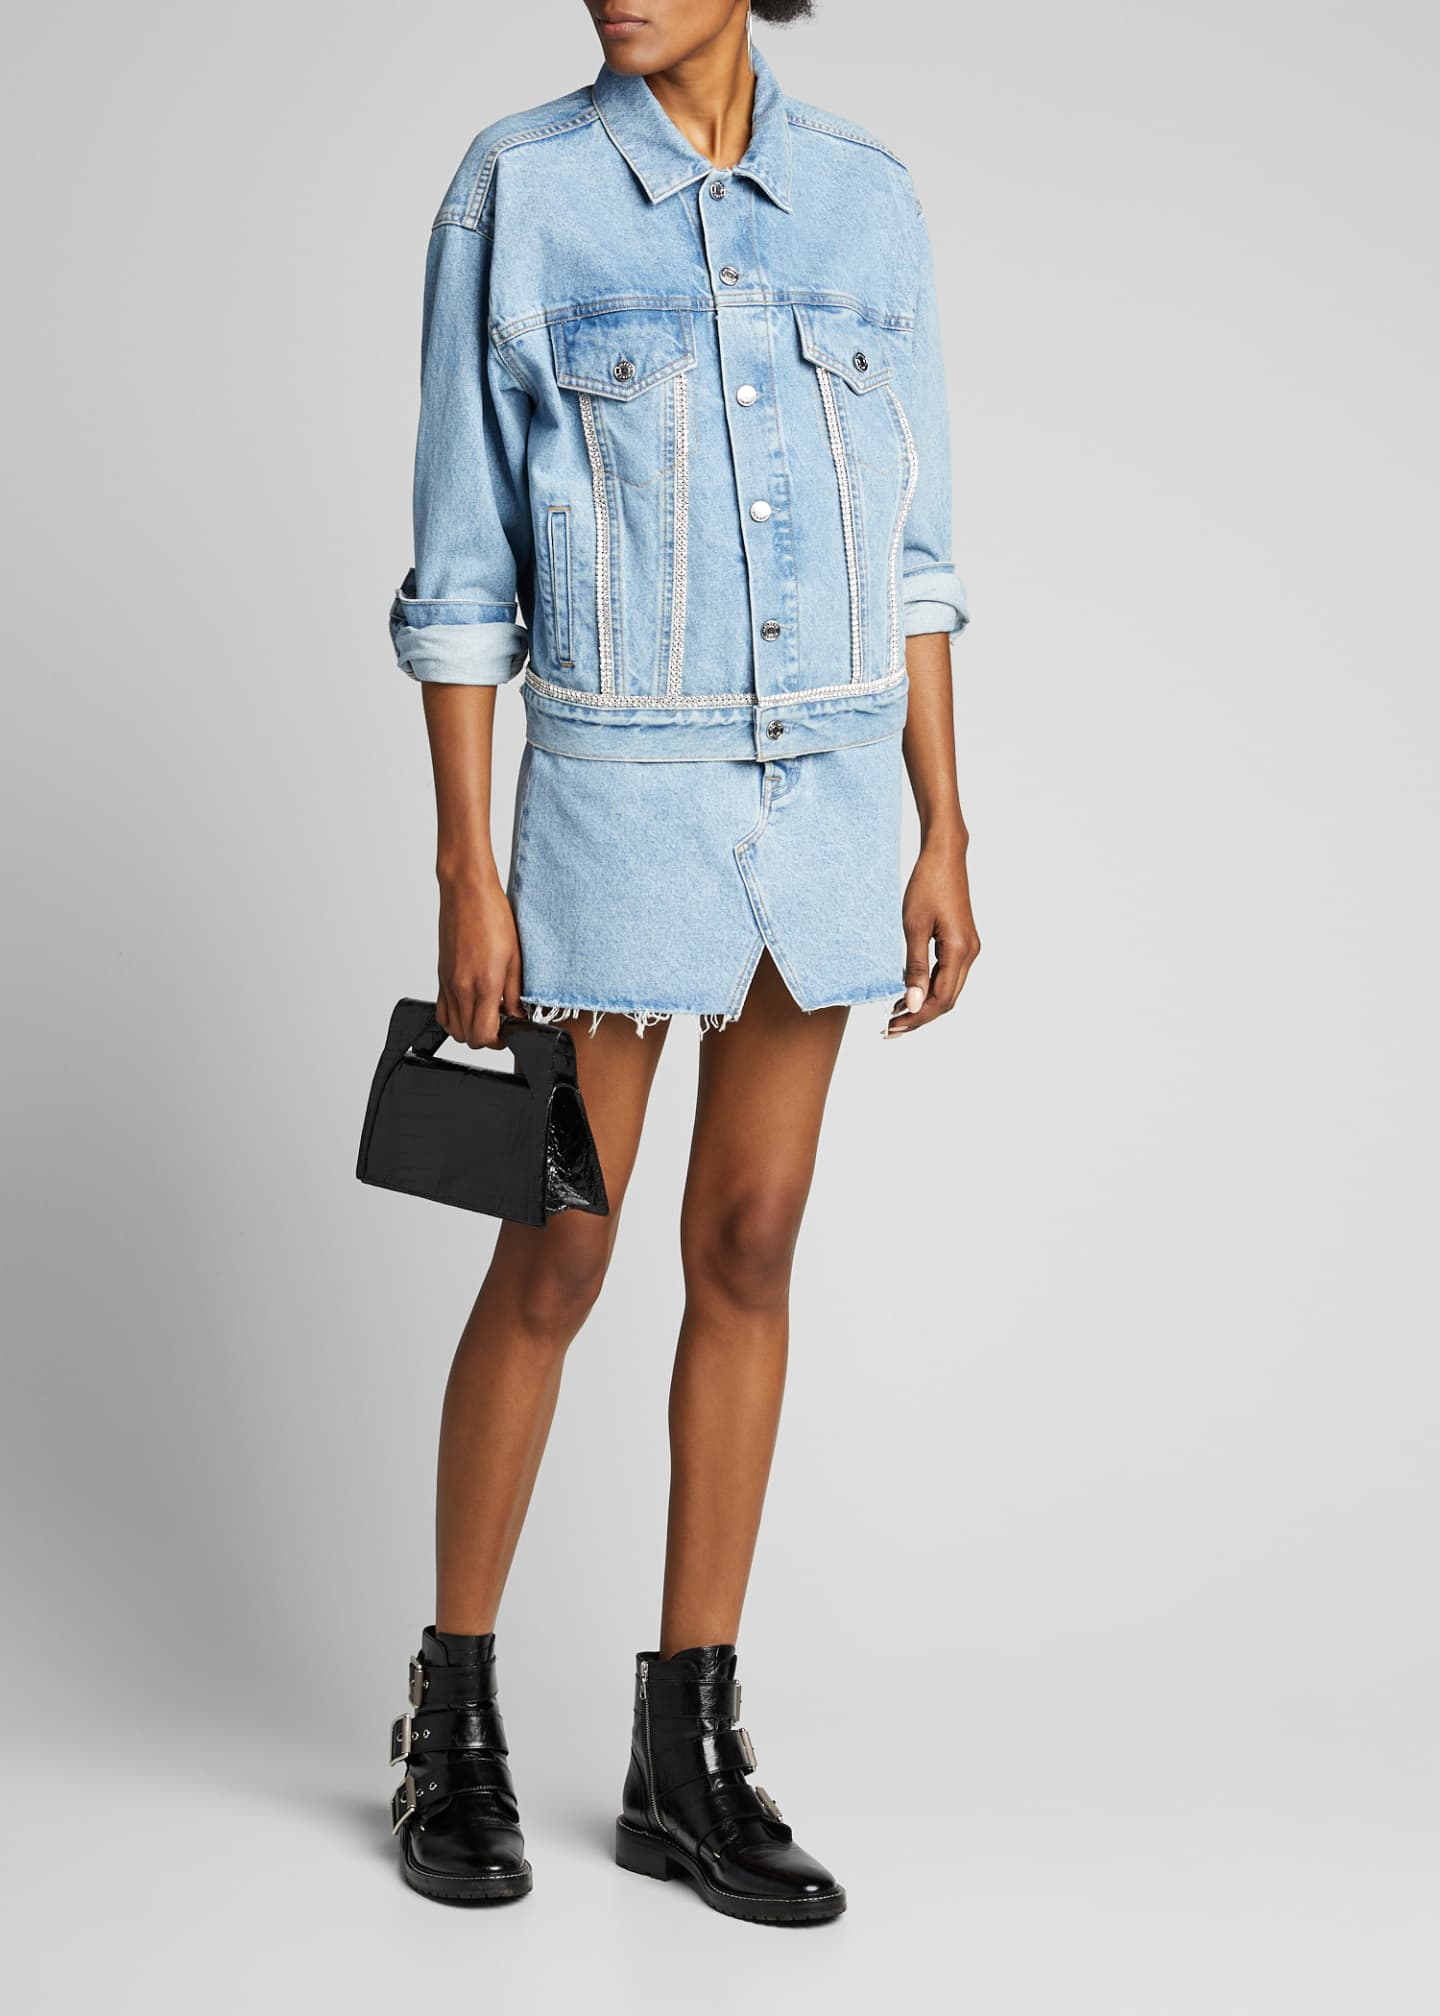 GRLFRND Milla Denim Skirt